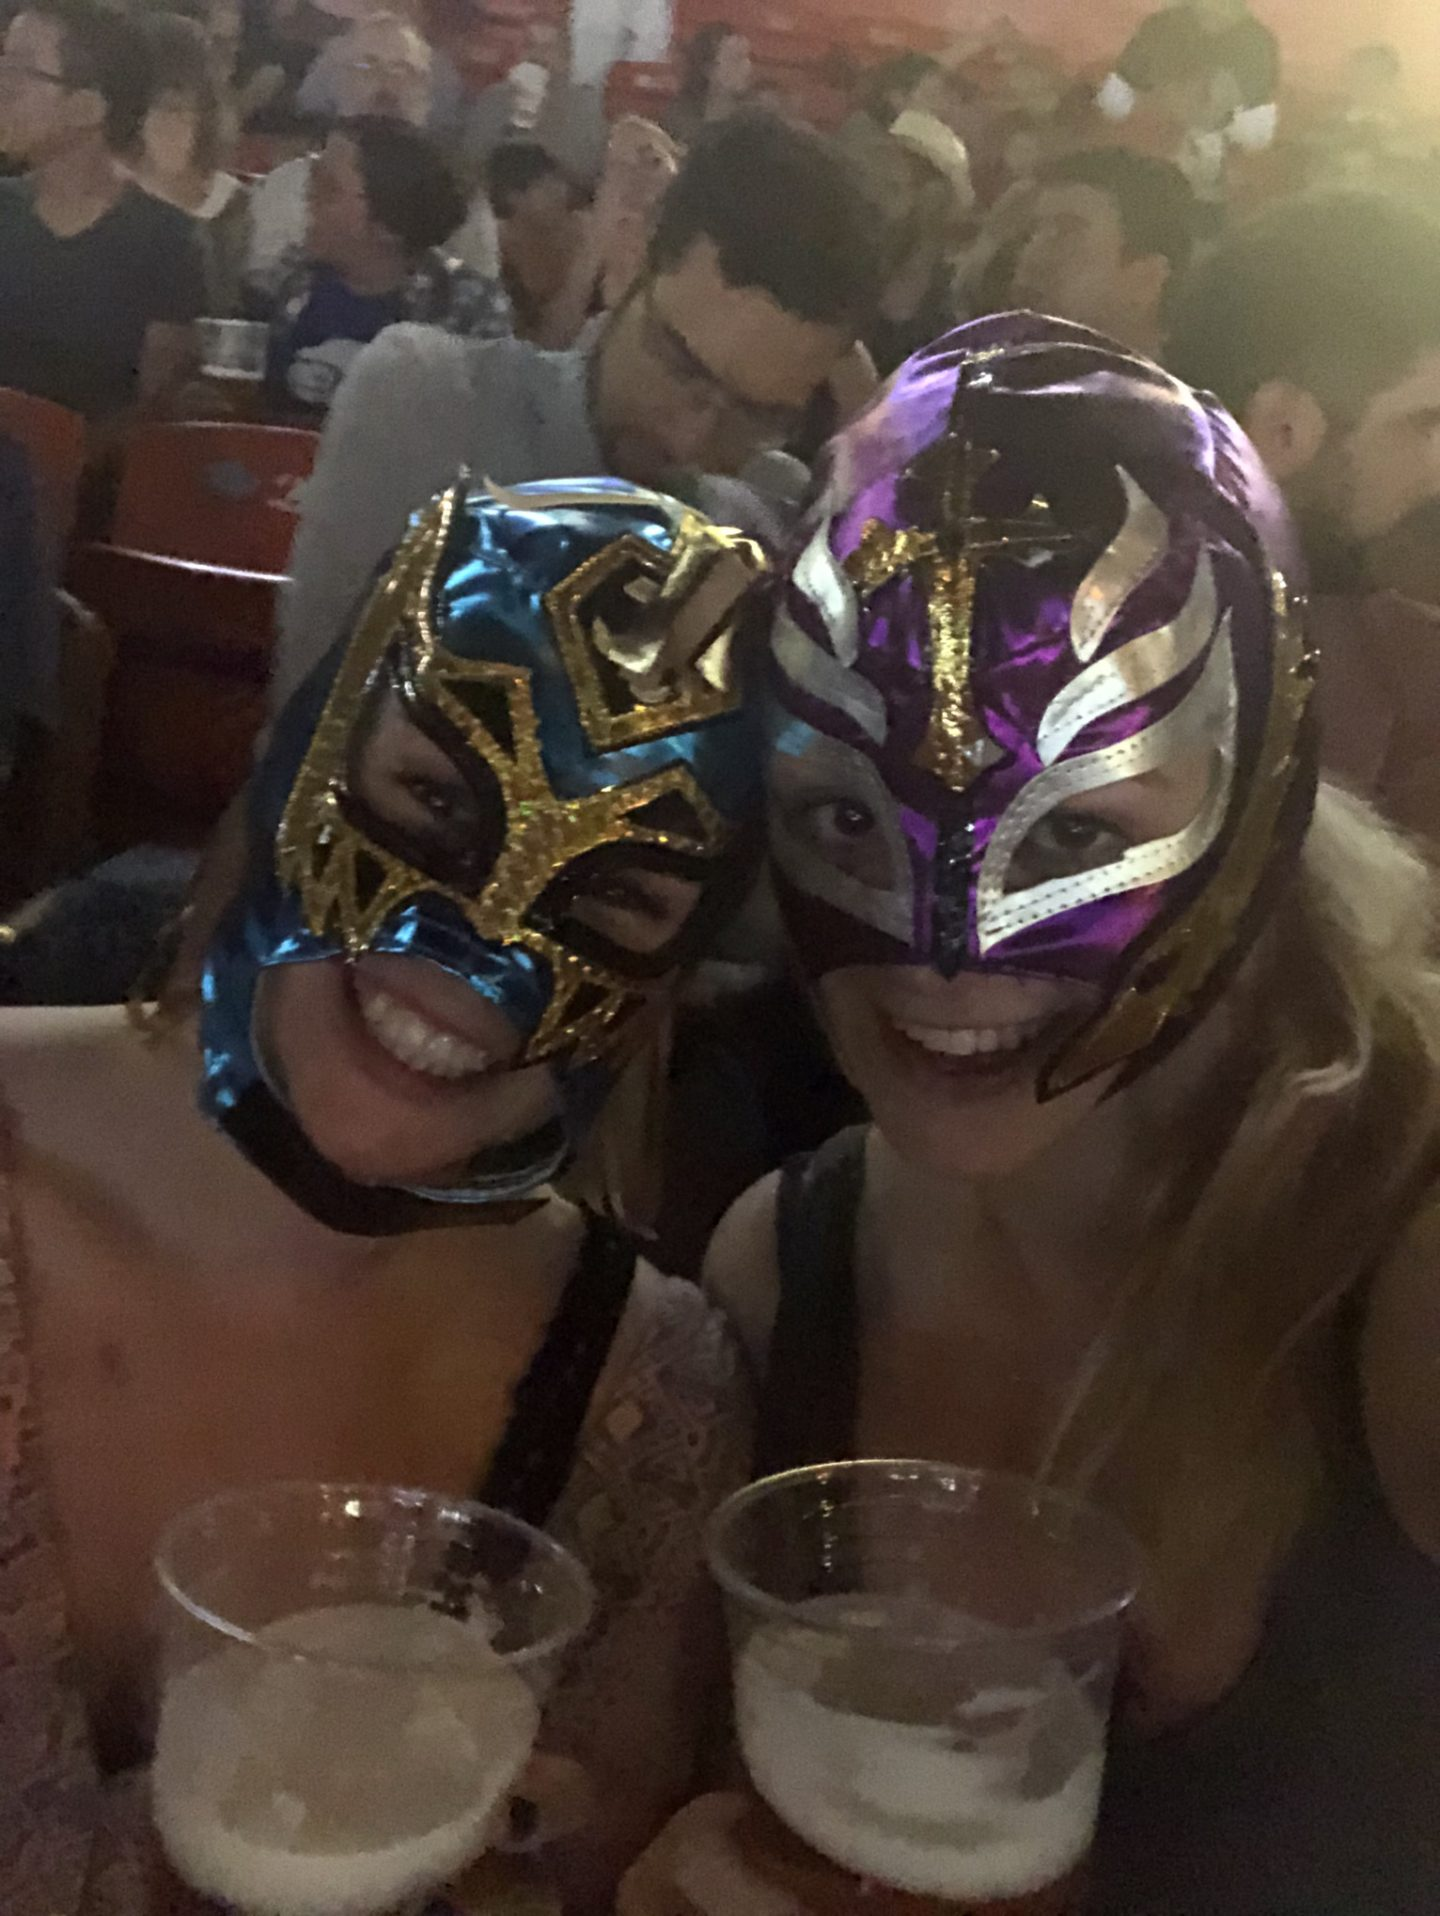 Girls in lucha libre masks